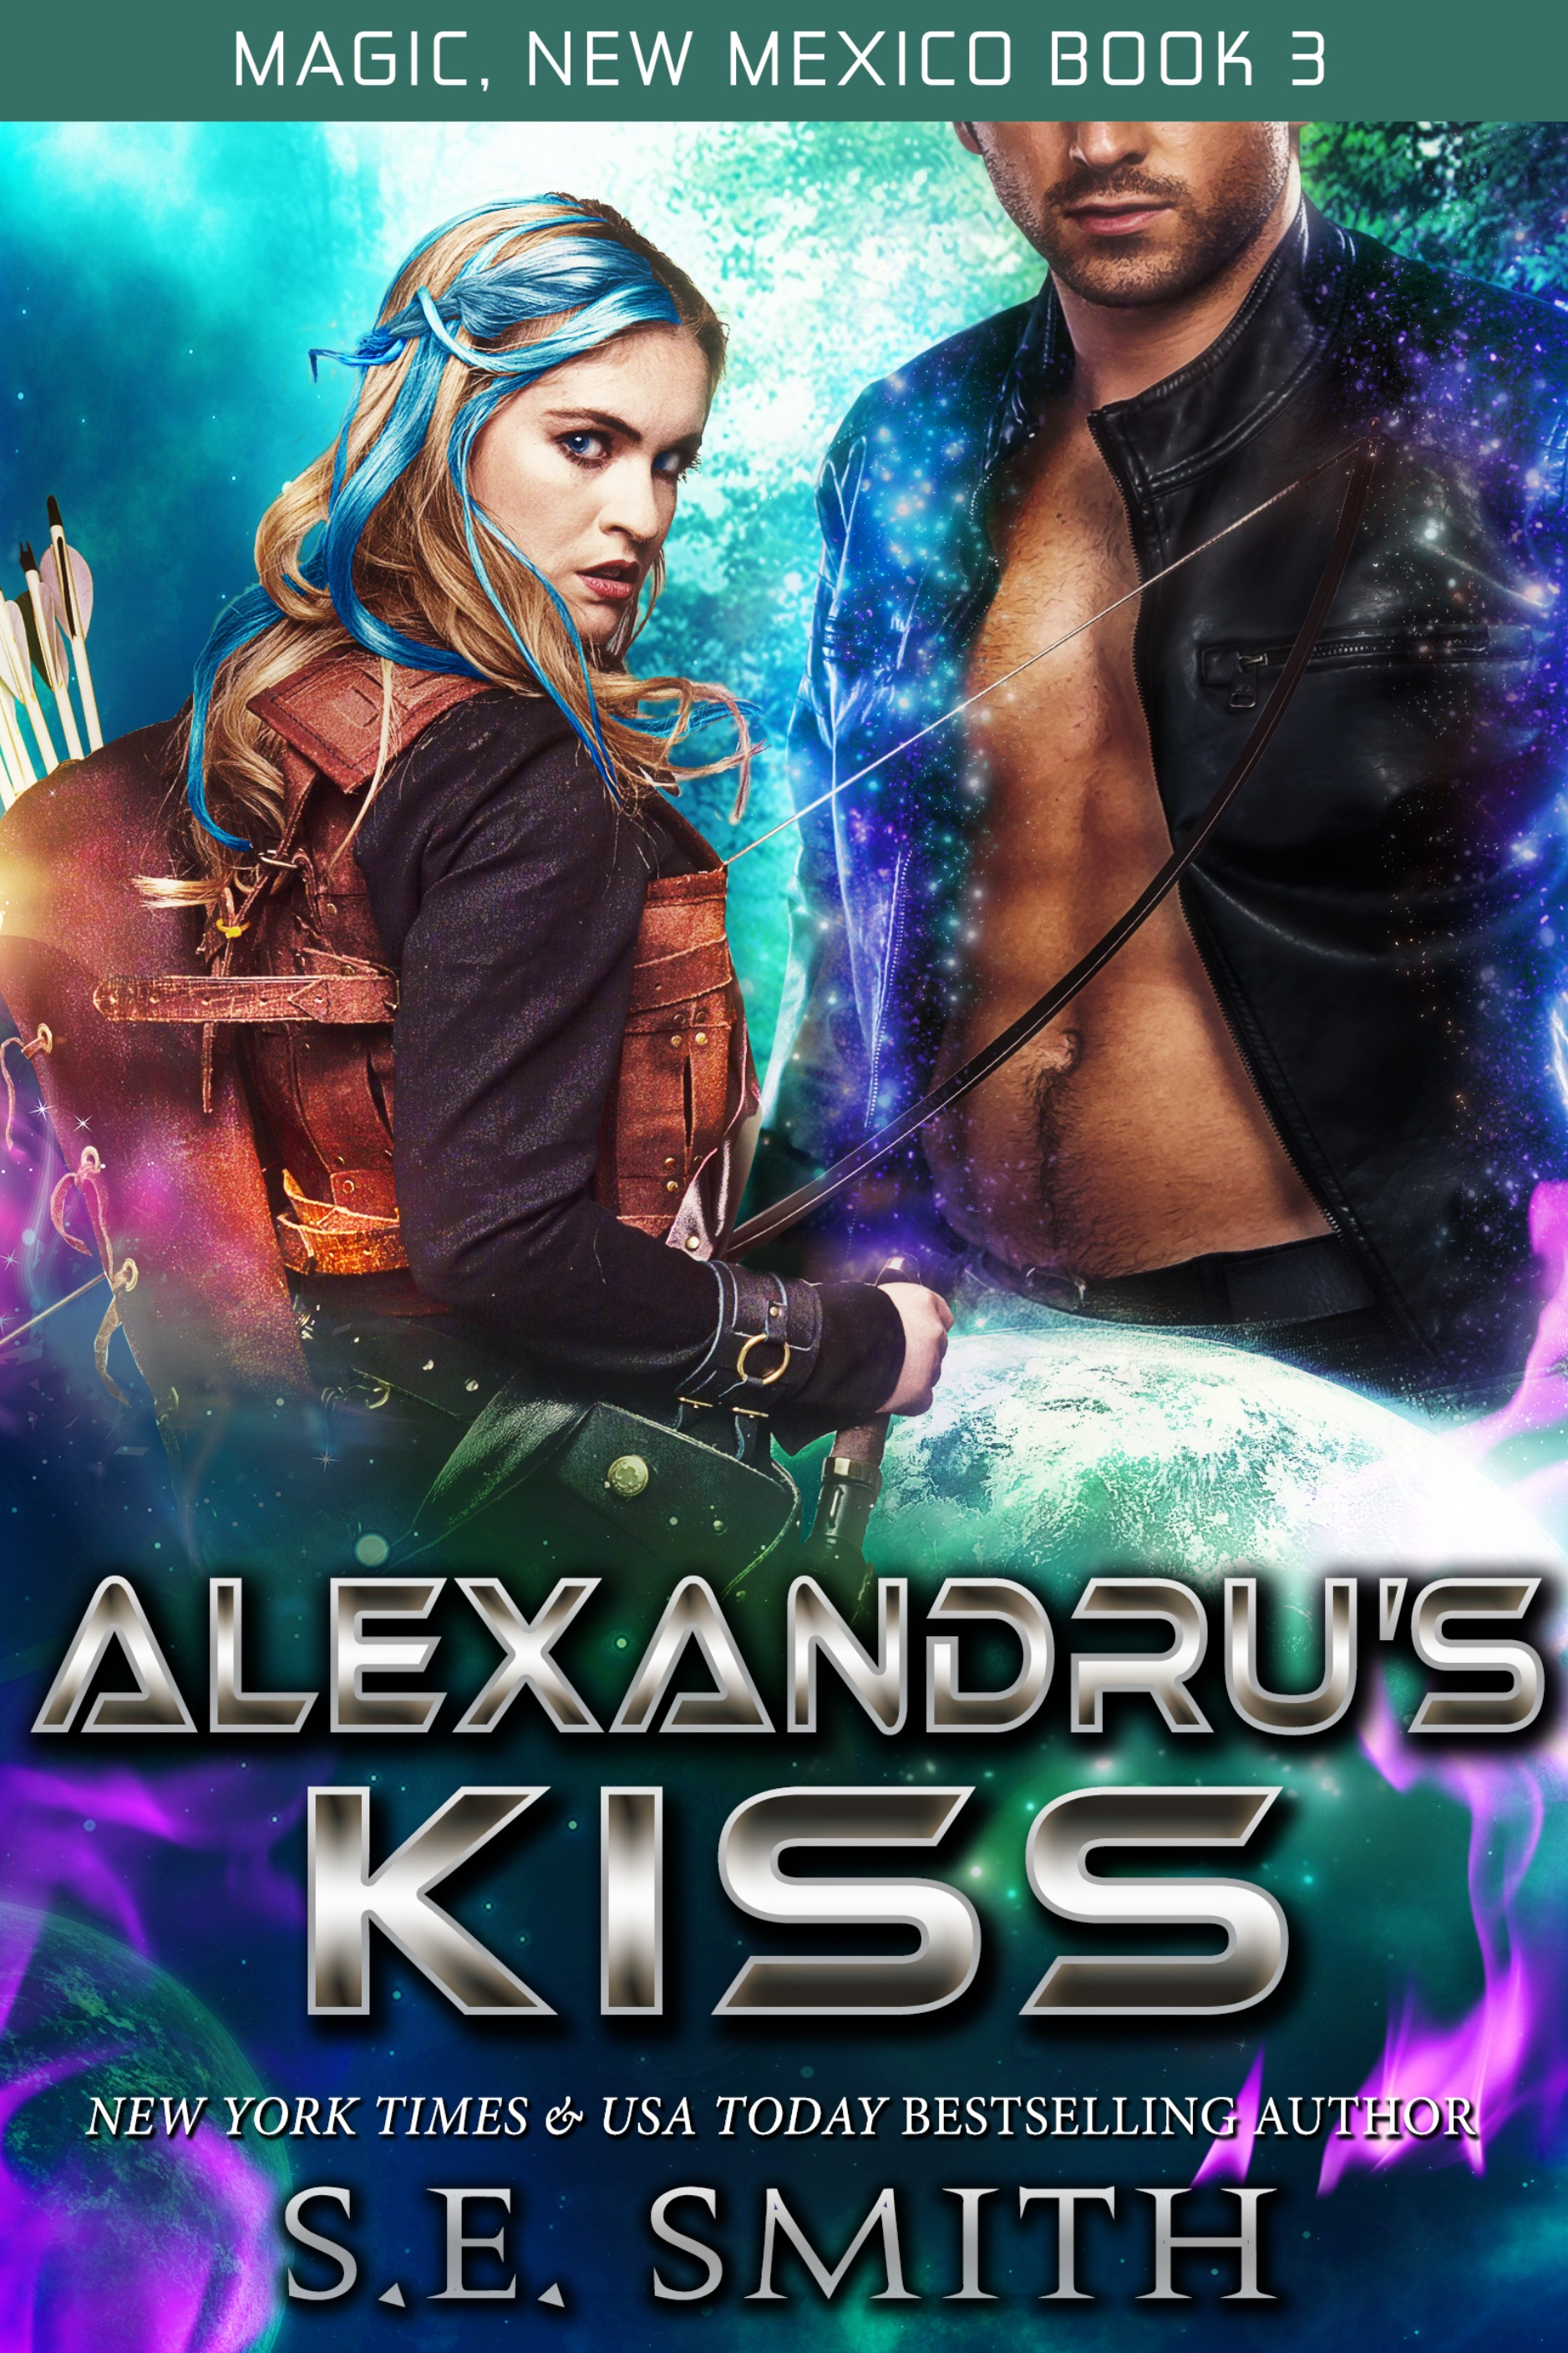 Alexandru's Kiss: Magic, New Mexico Book 3 (Paperback)